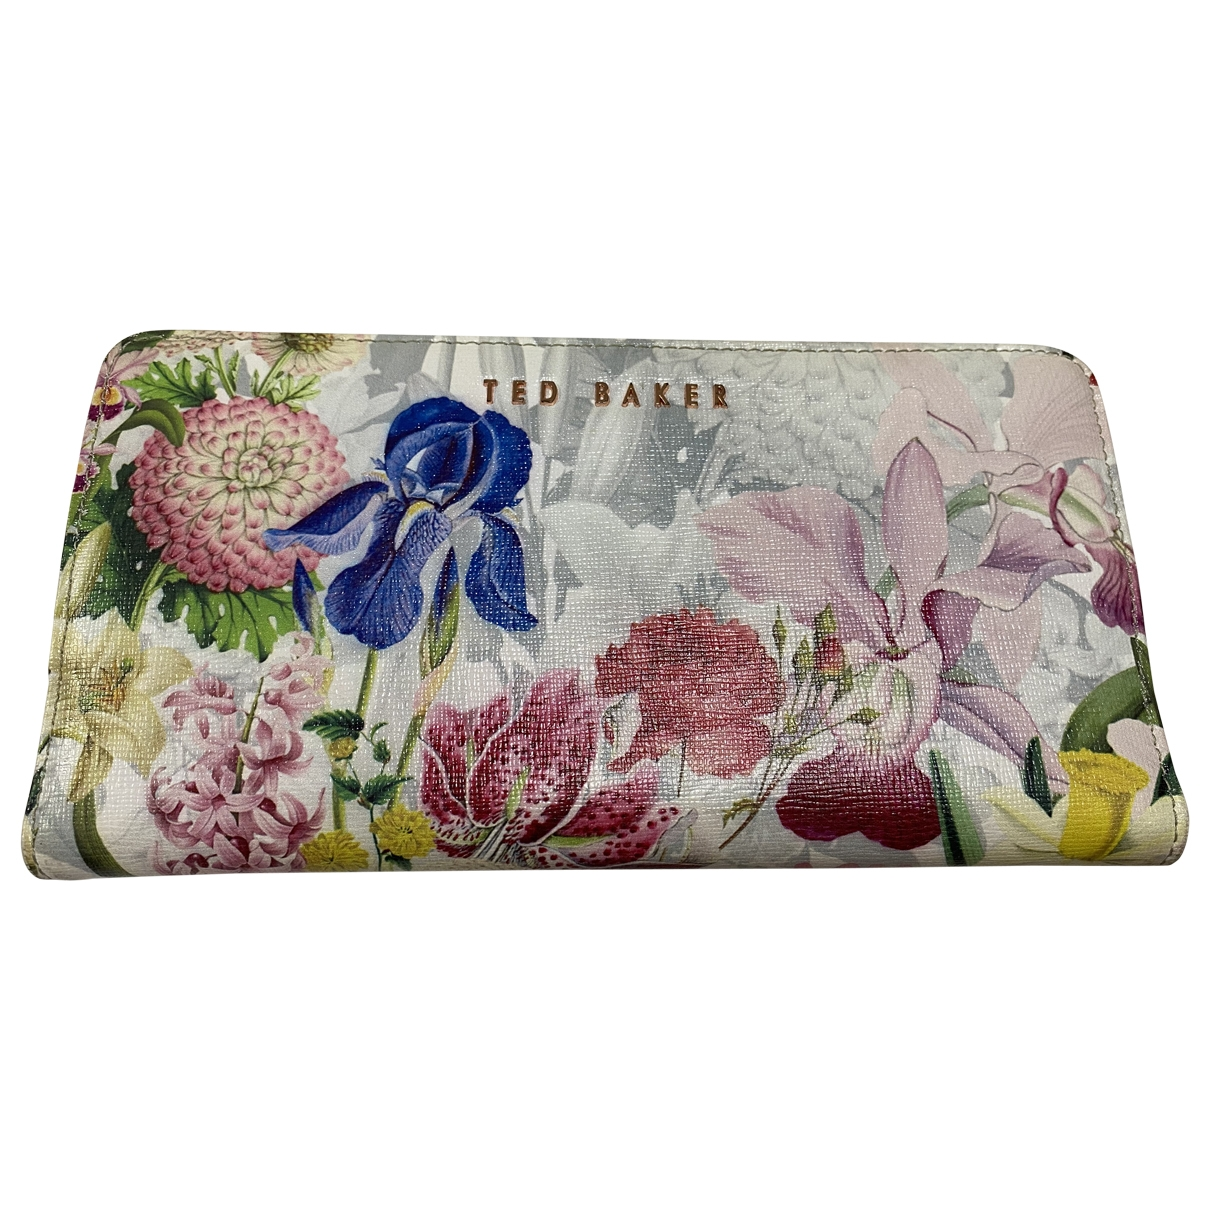 Ted Baker \N Multicolour Leather wallet for Women \N